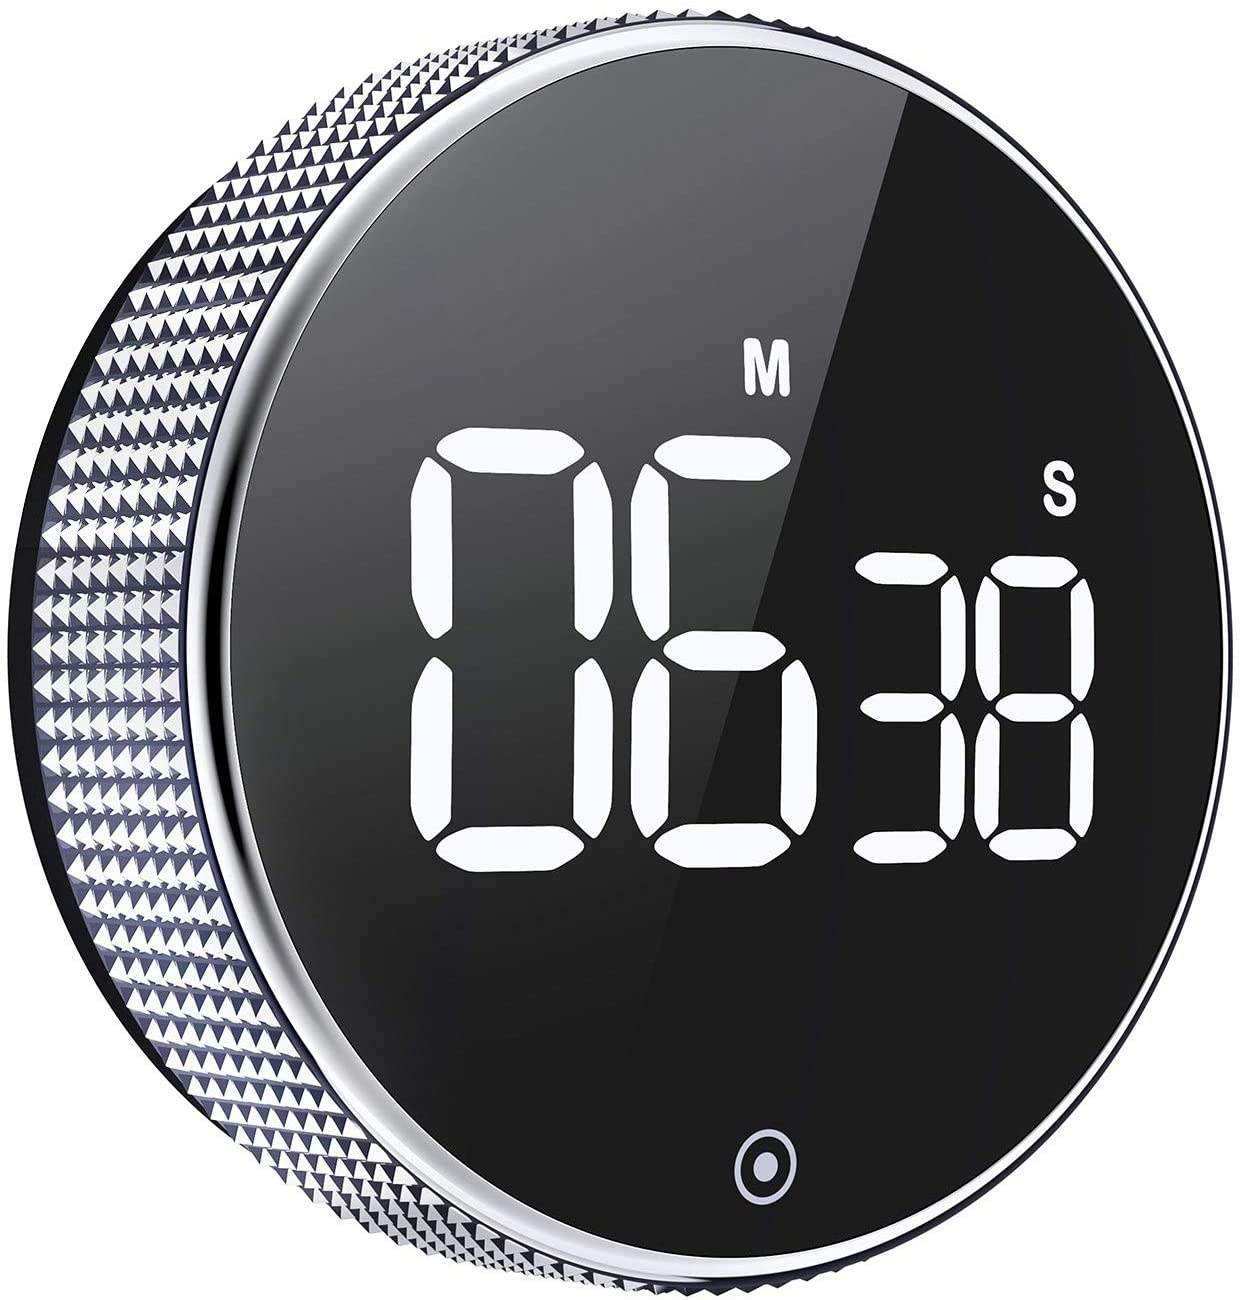 NEW Arrival Circular Knob Loud Digital Kitchen Countdown Timer Magnetic LCD Large Display Countdown Timer